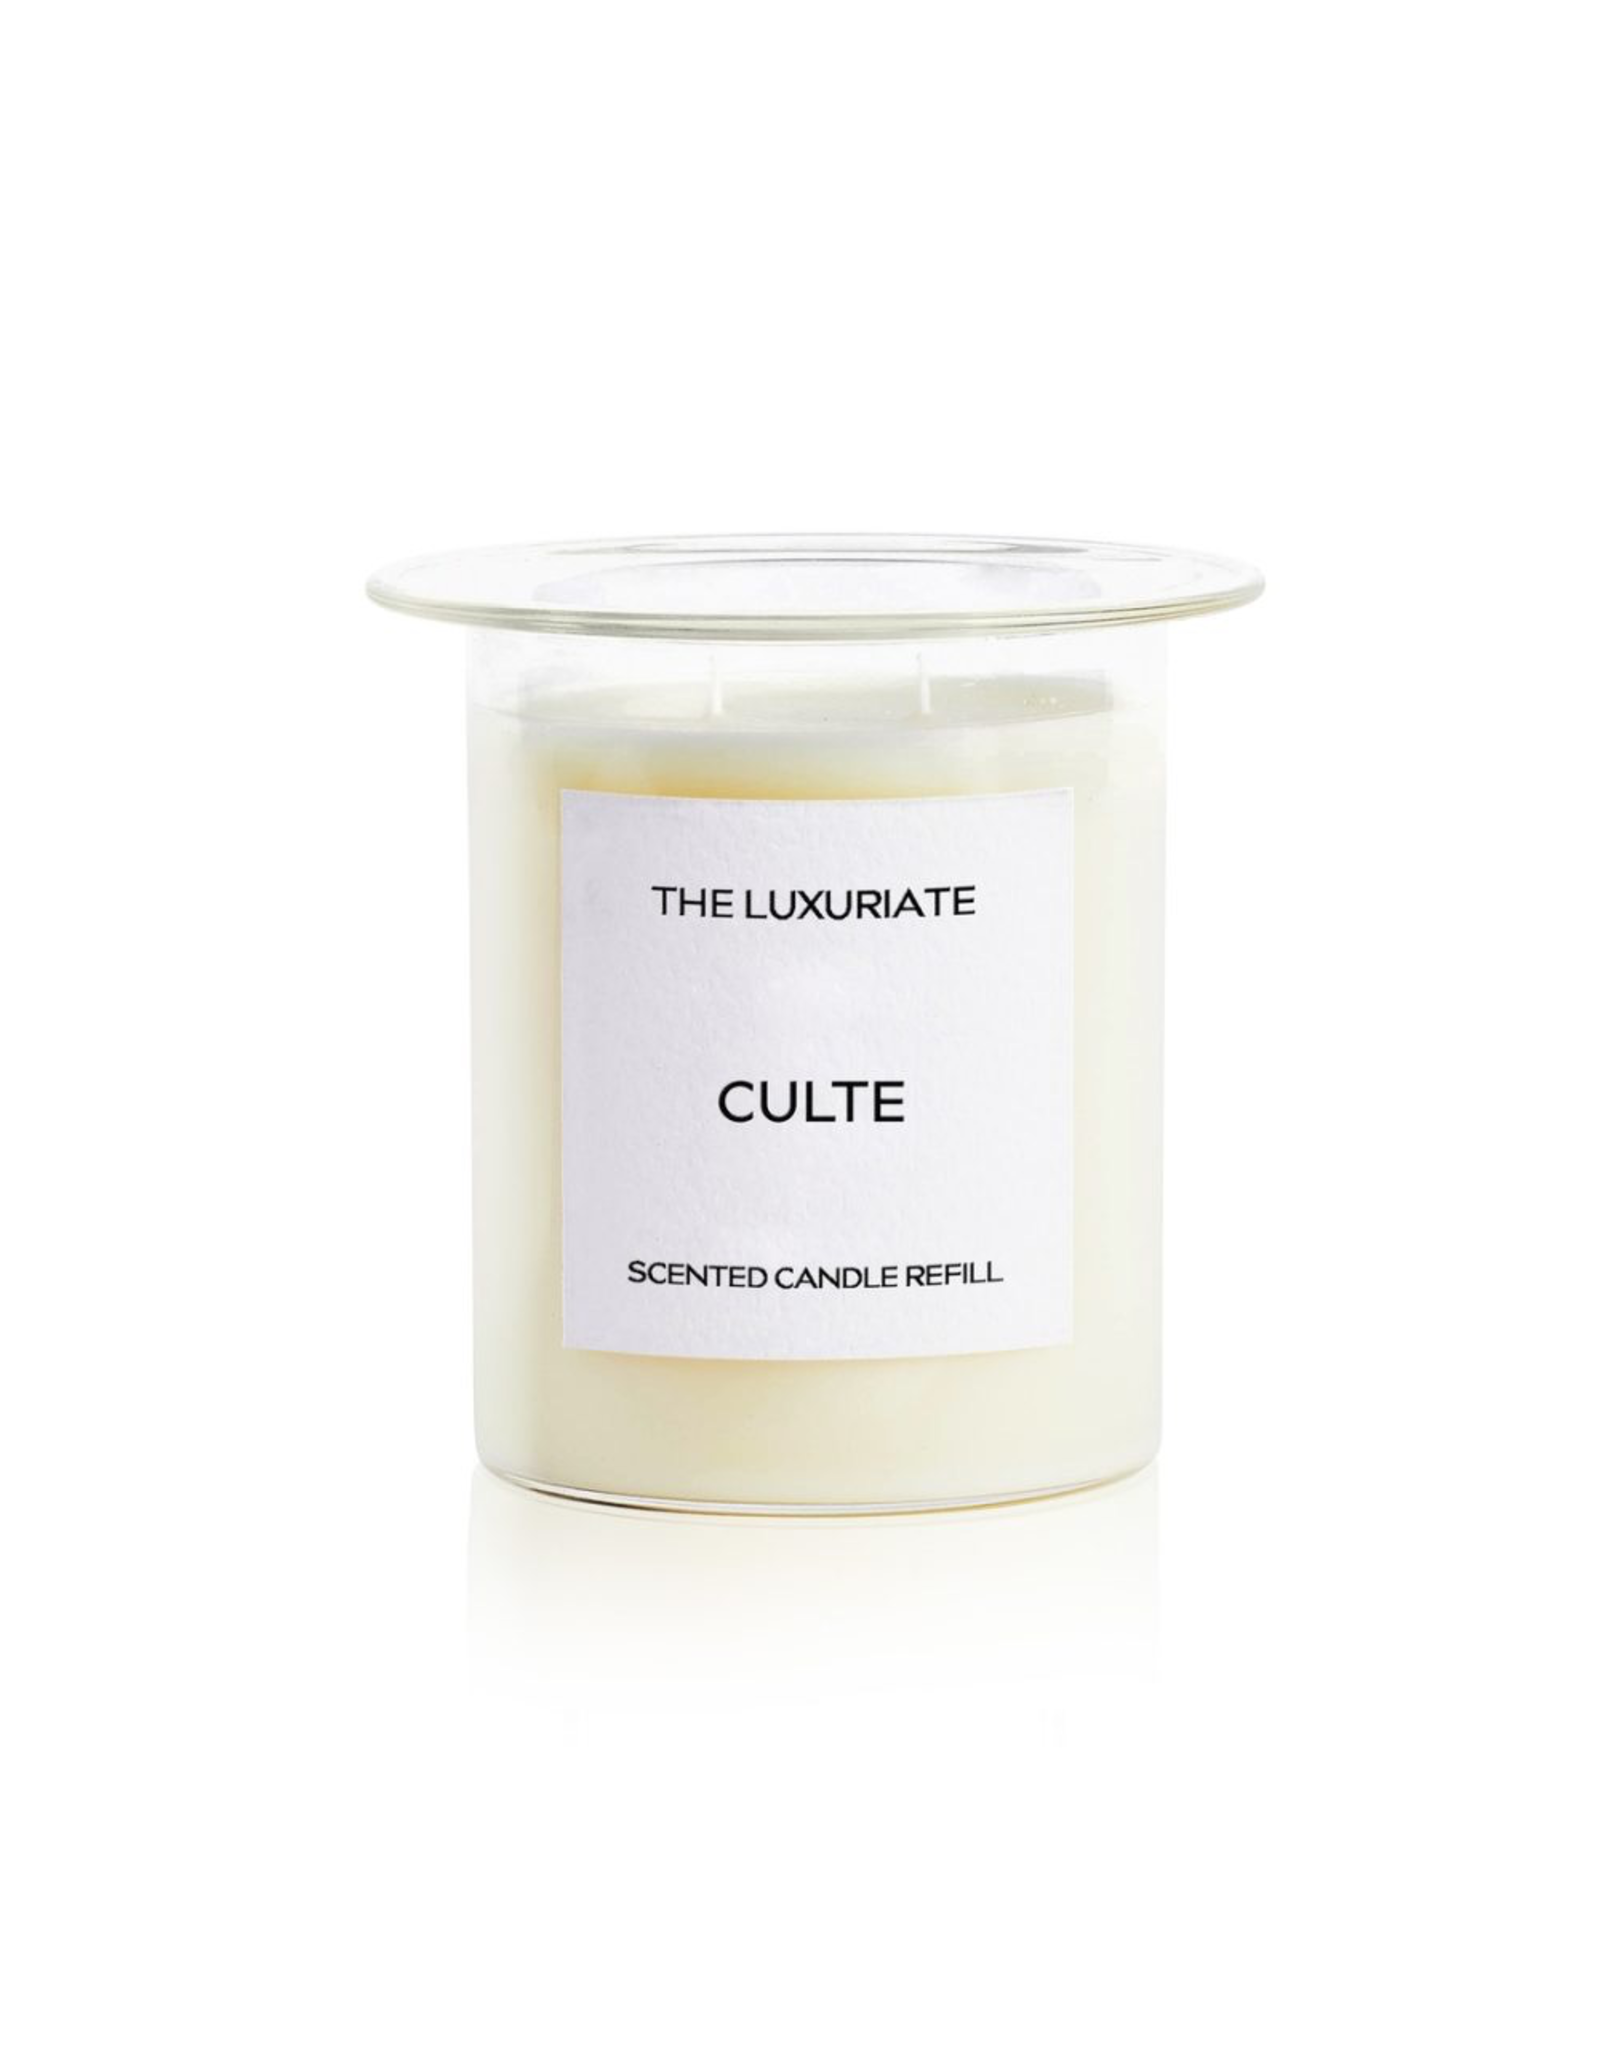 THE LUXURIATE CULTE CANDLE REFILL CLEAR